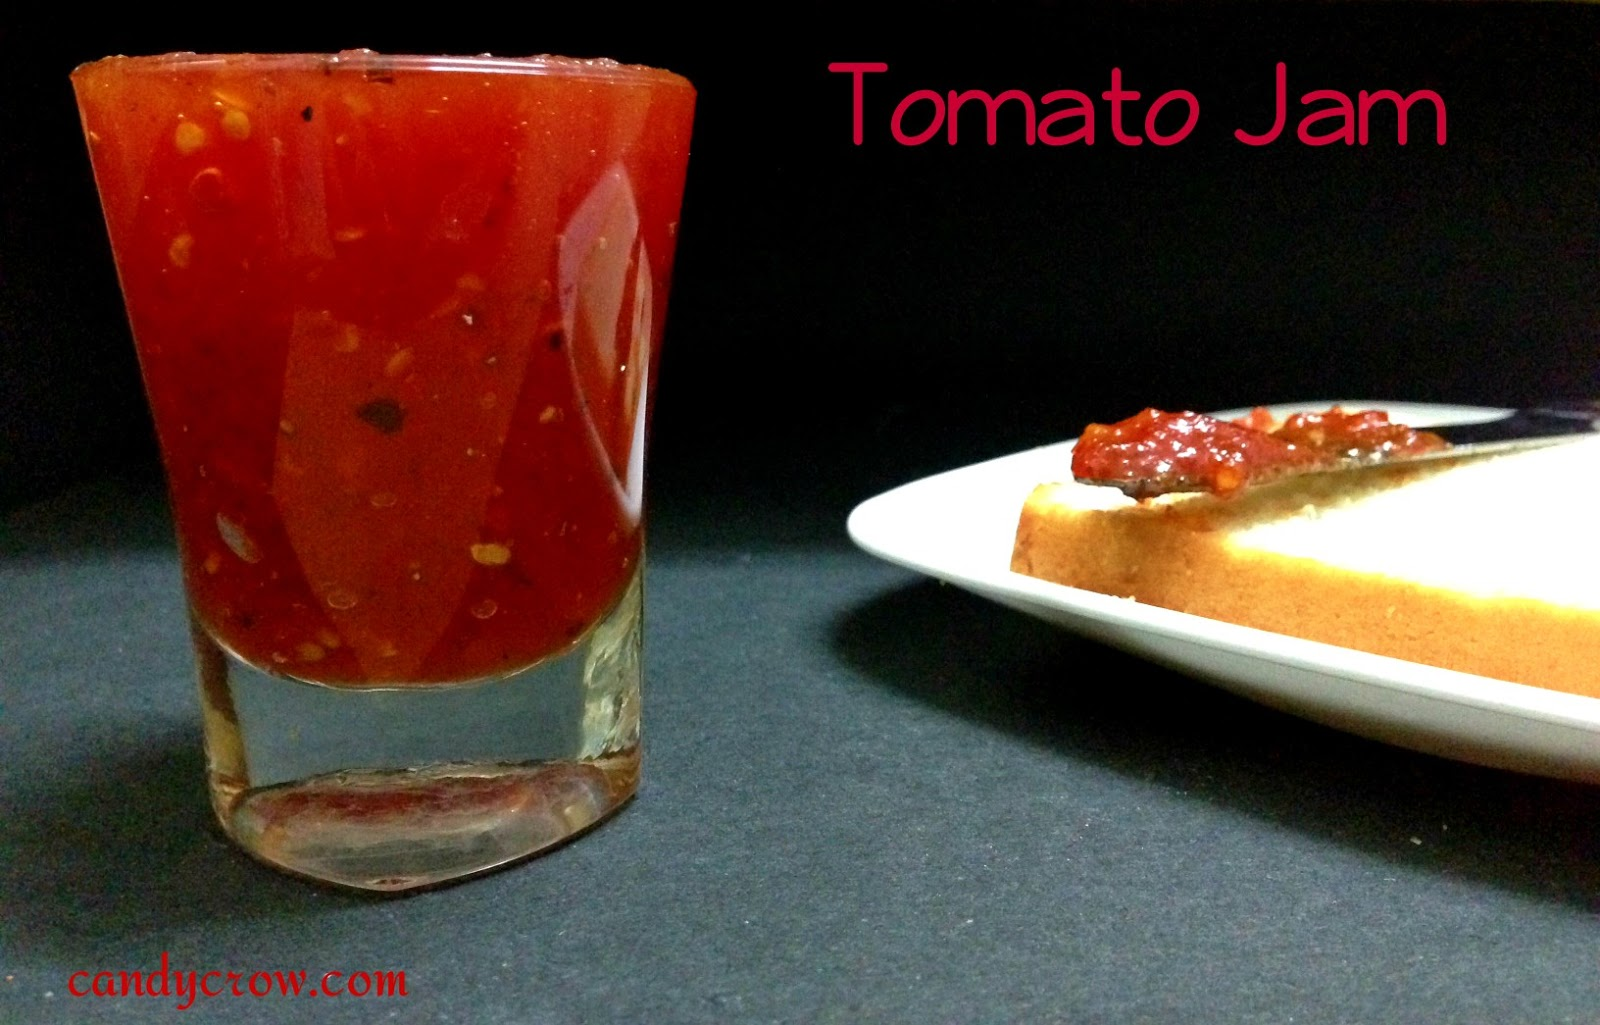 Tomato Jam | Candy Crow | Top Indian Beauty and Lifestyle Blog